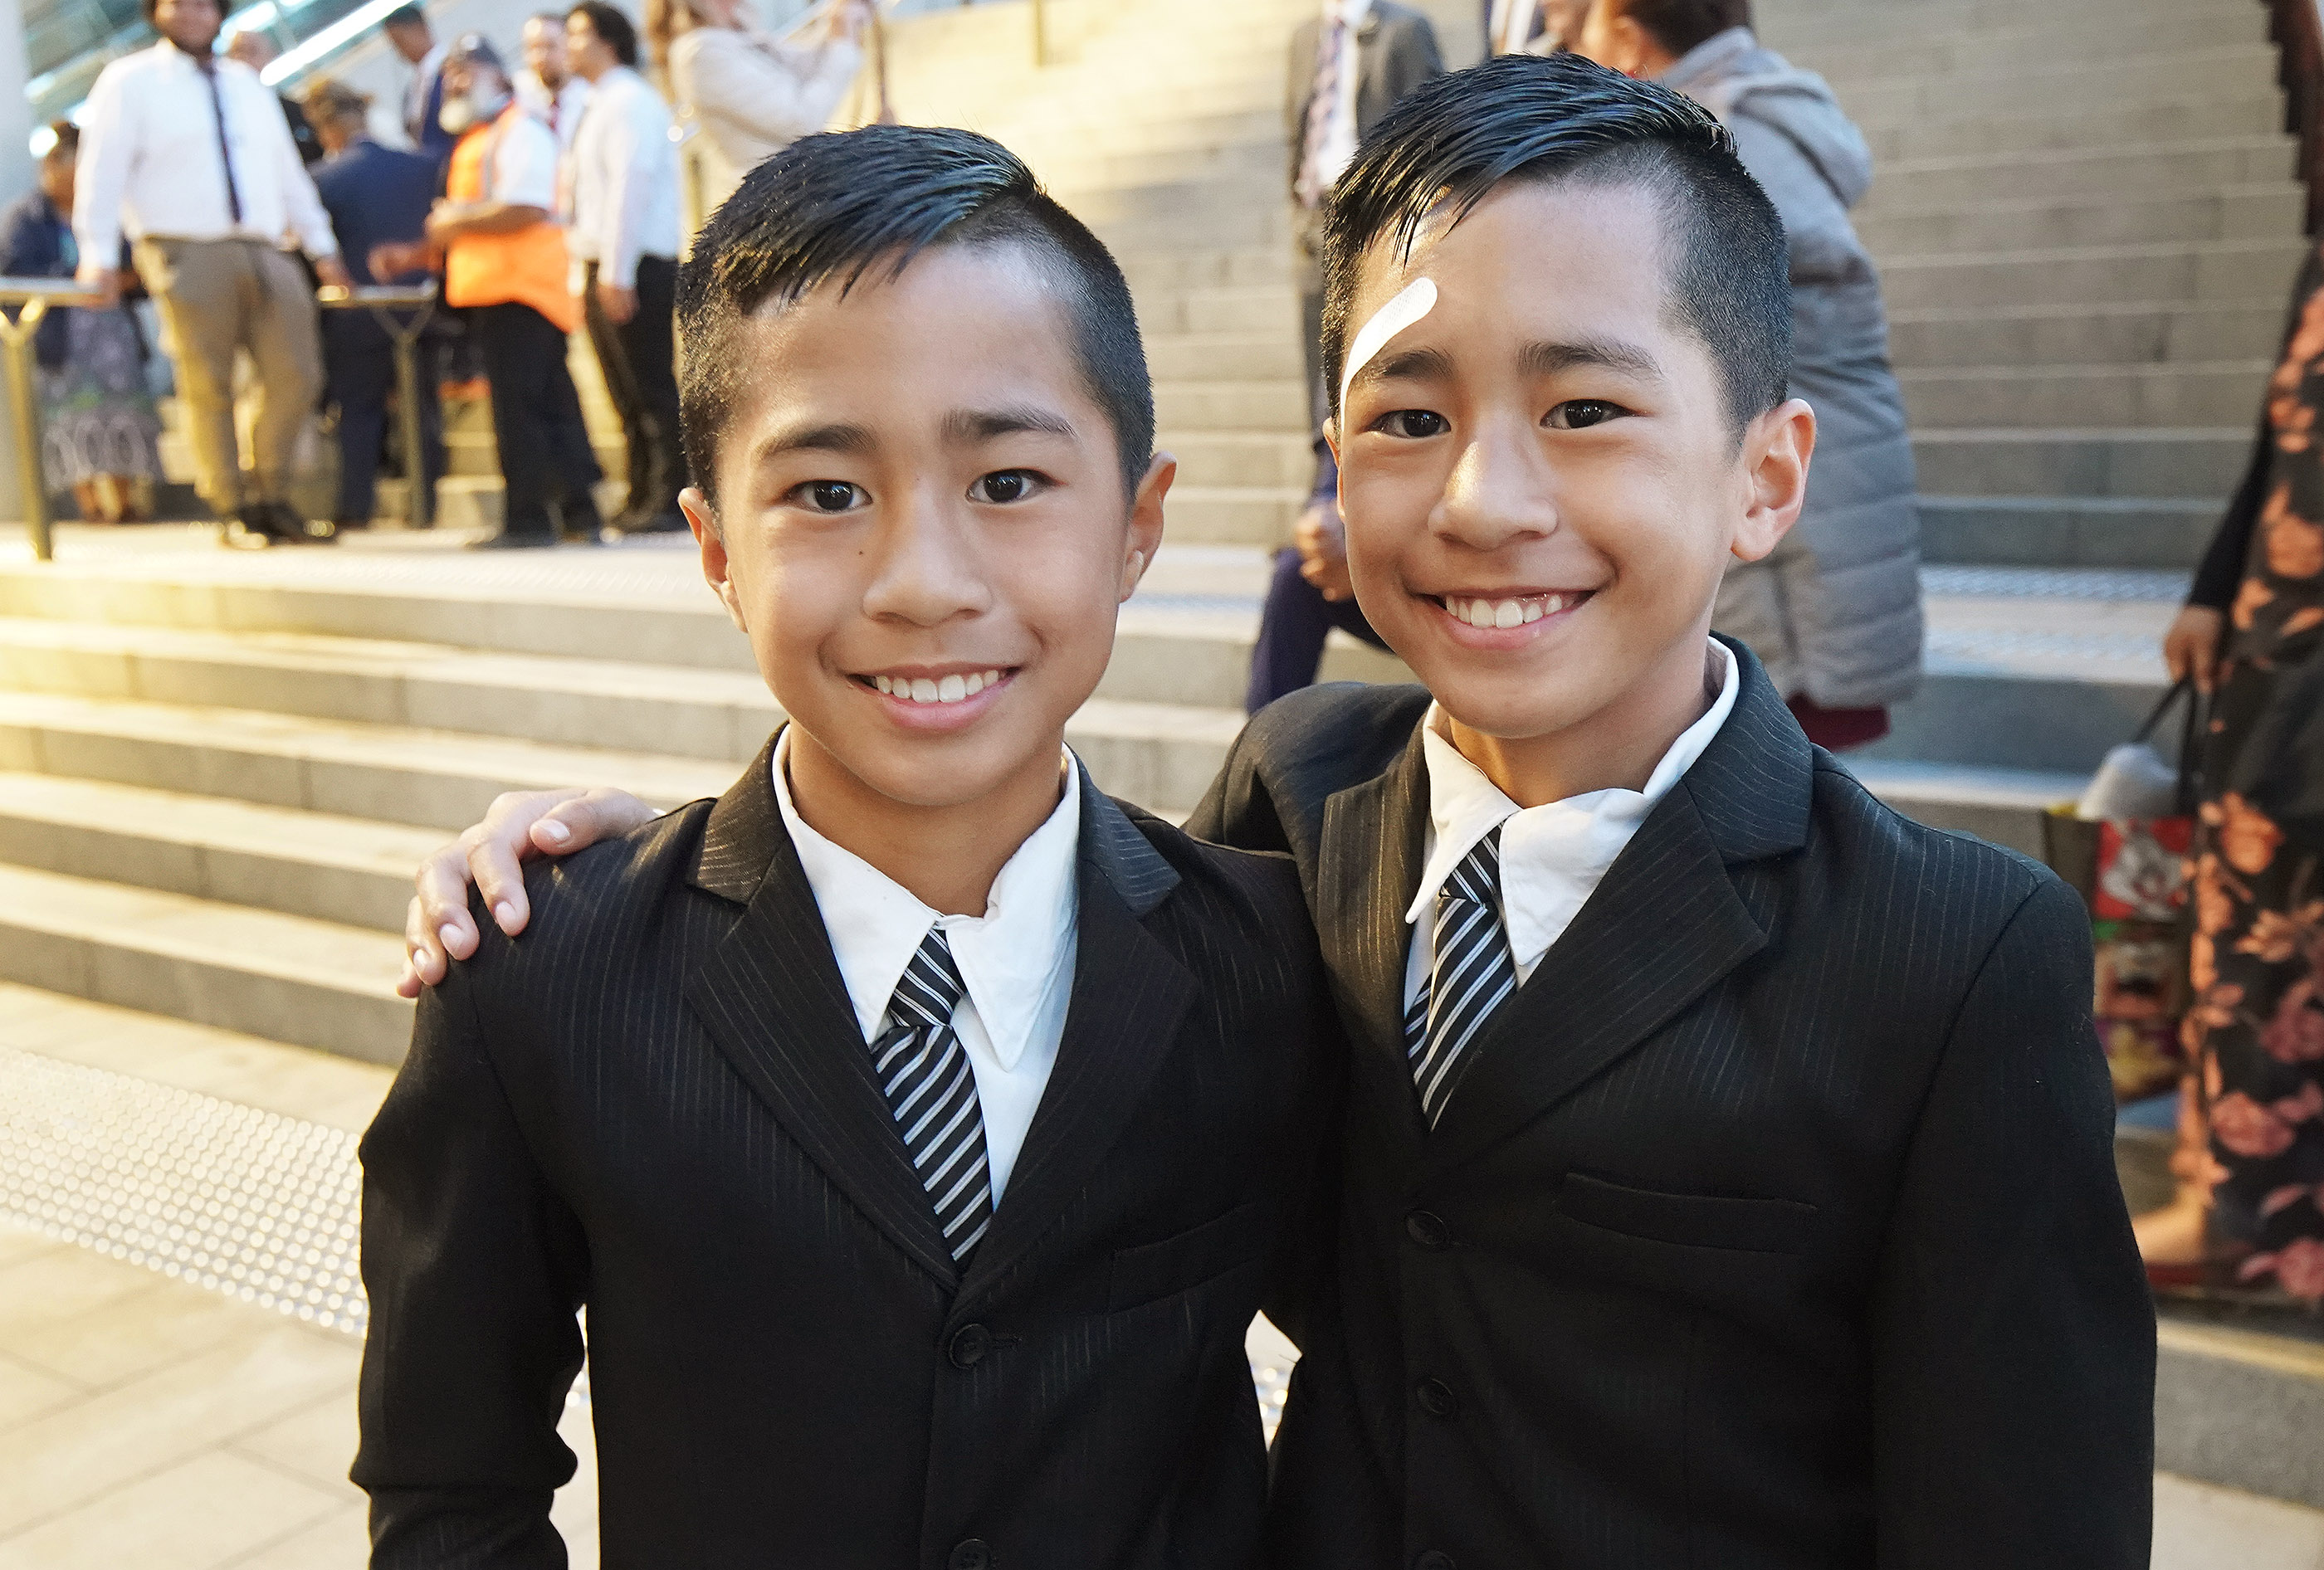 Twins Darren and Donovan Mekaio wait to hear President Russell M. Nelson of The Church of Jesus Christ of Latter-day Saints on May 19, 2019, in Sydney, Australia.